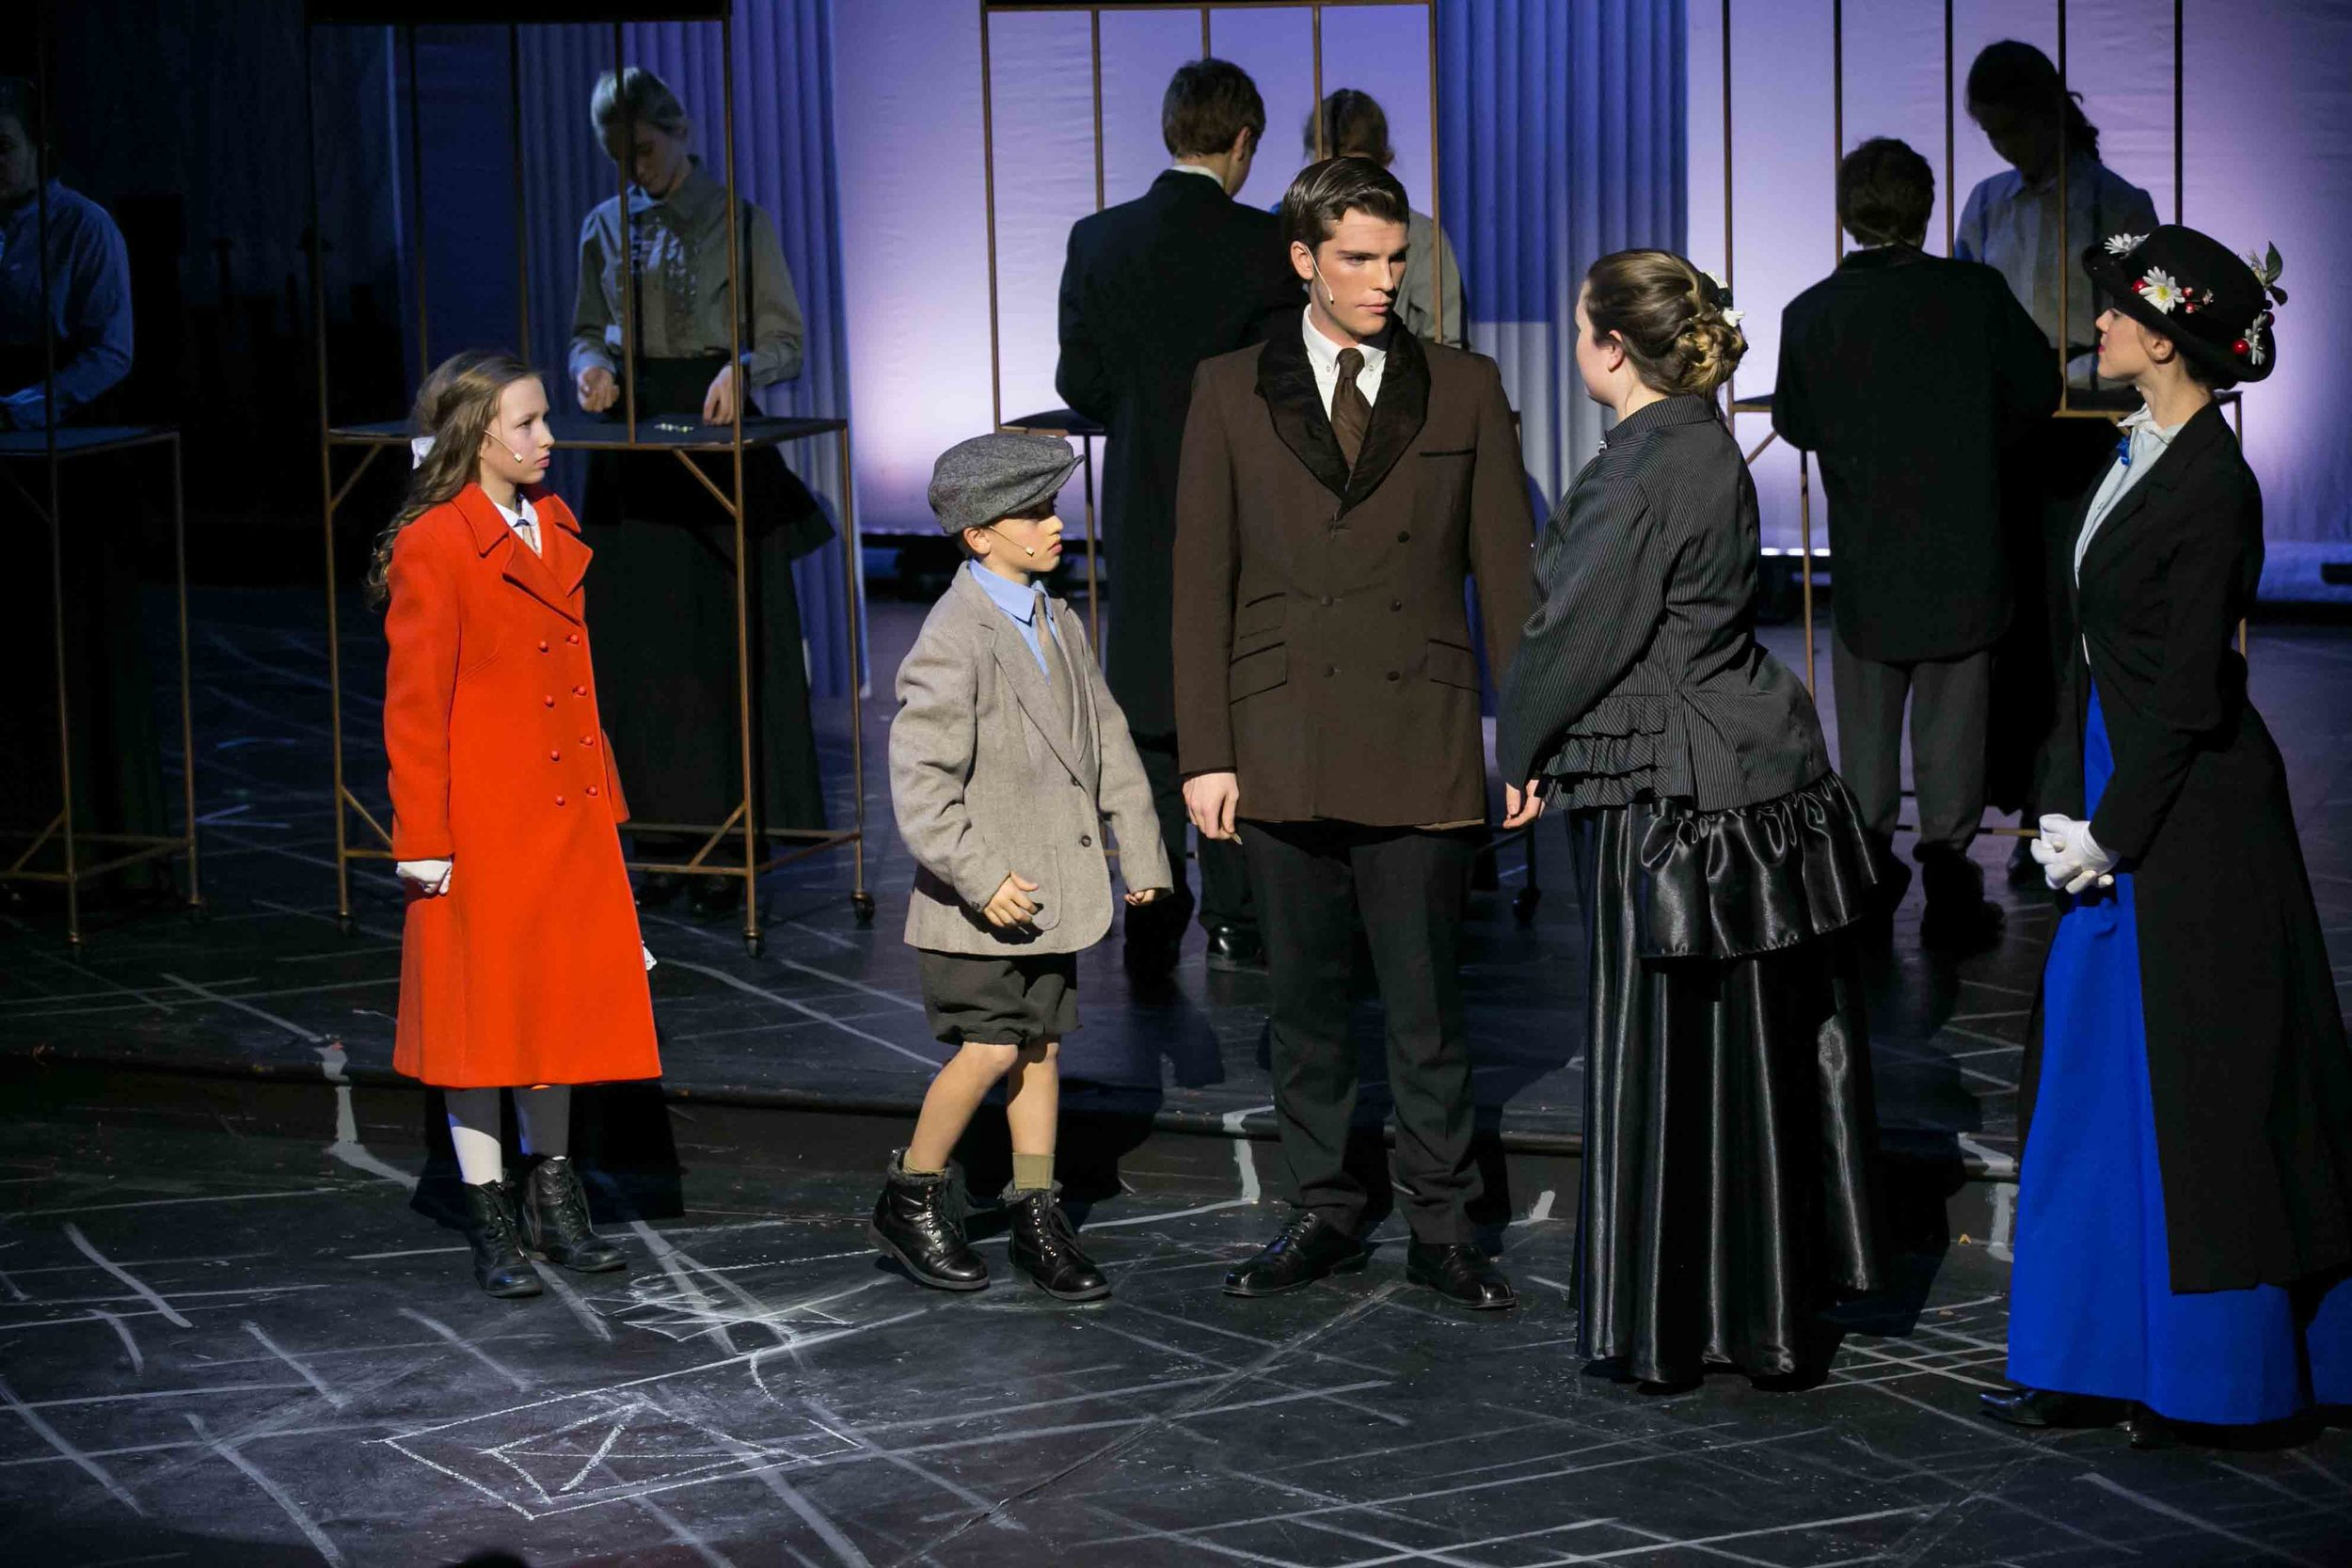 2-4-16 Mary Poppins Proper Cast 0209.jpg